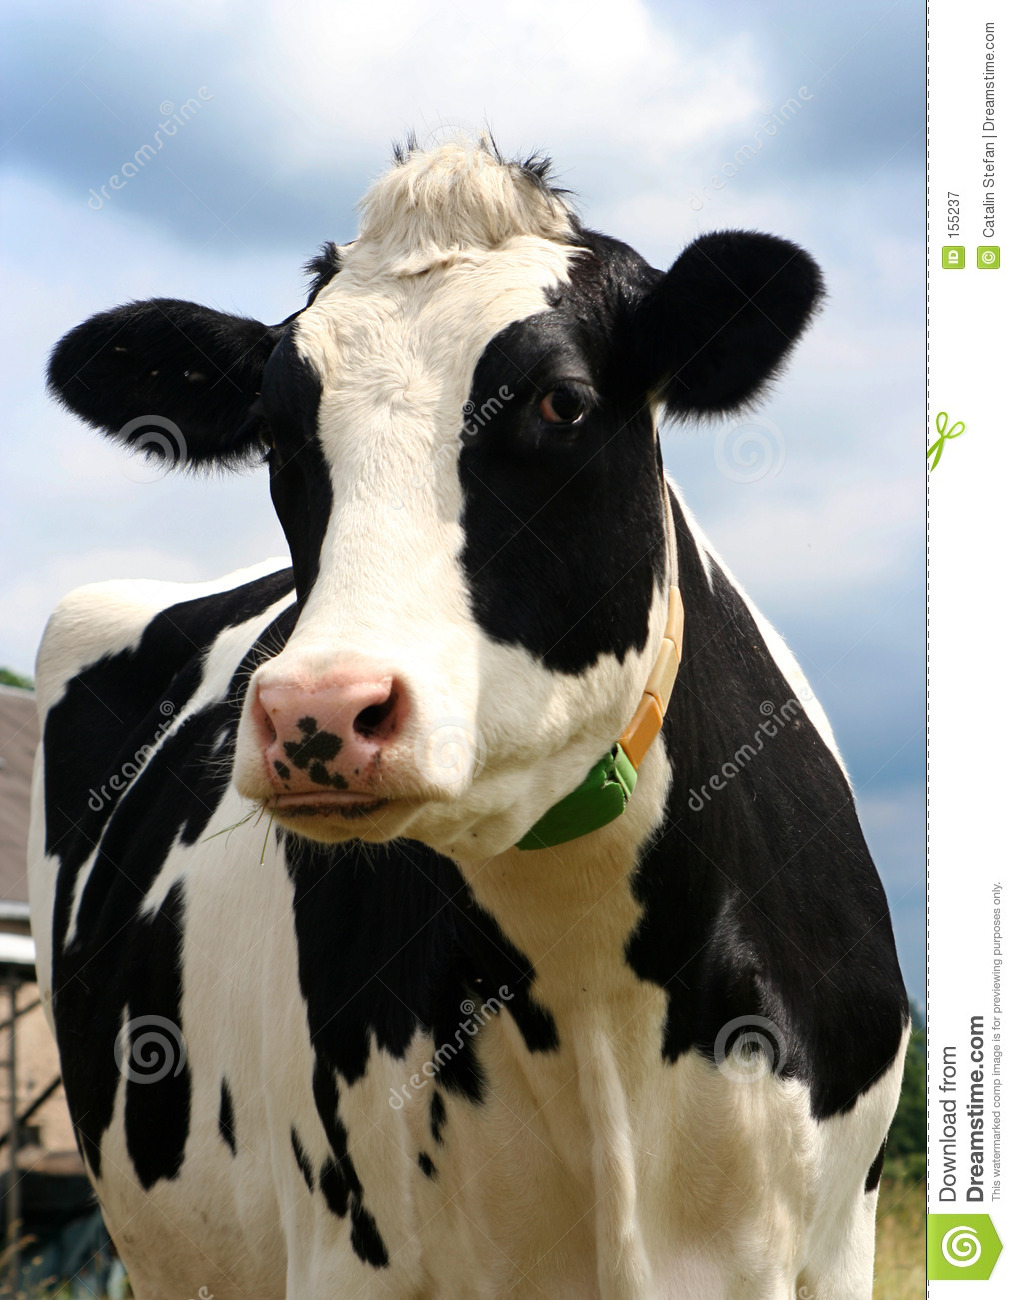 Photography Royalty Free Cow